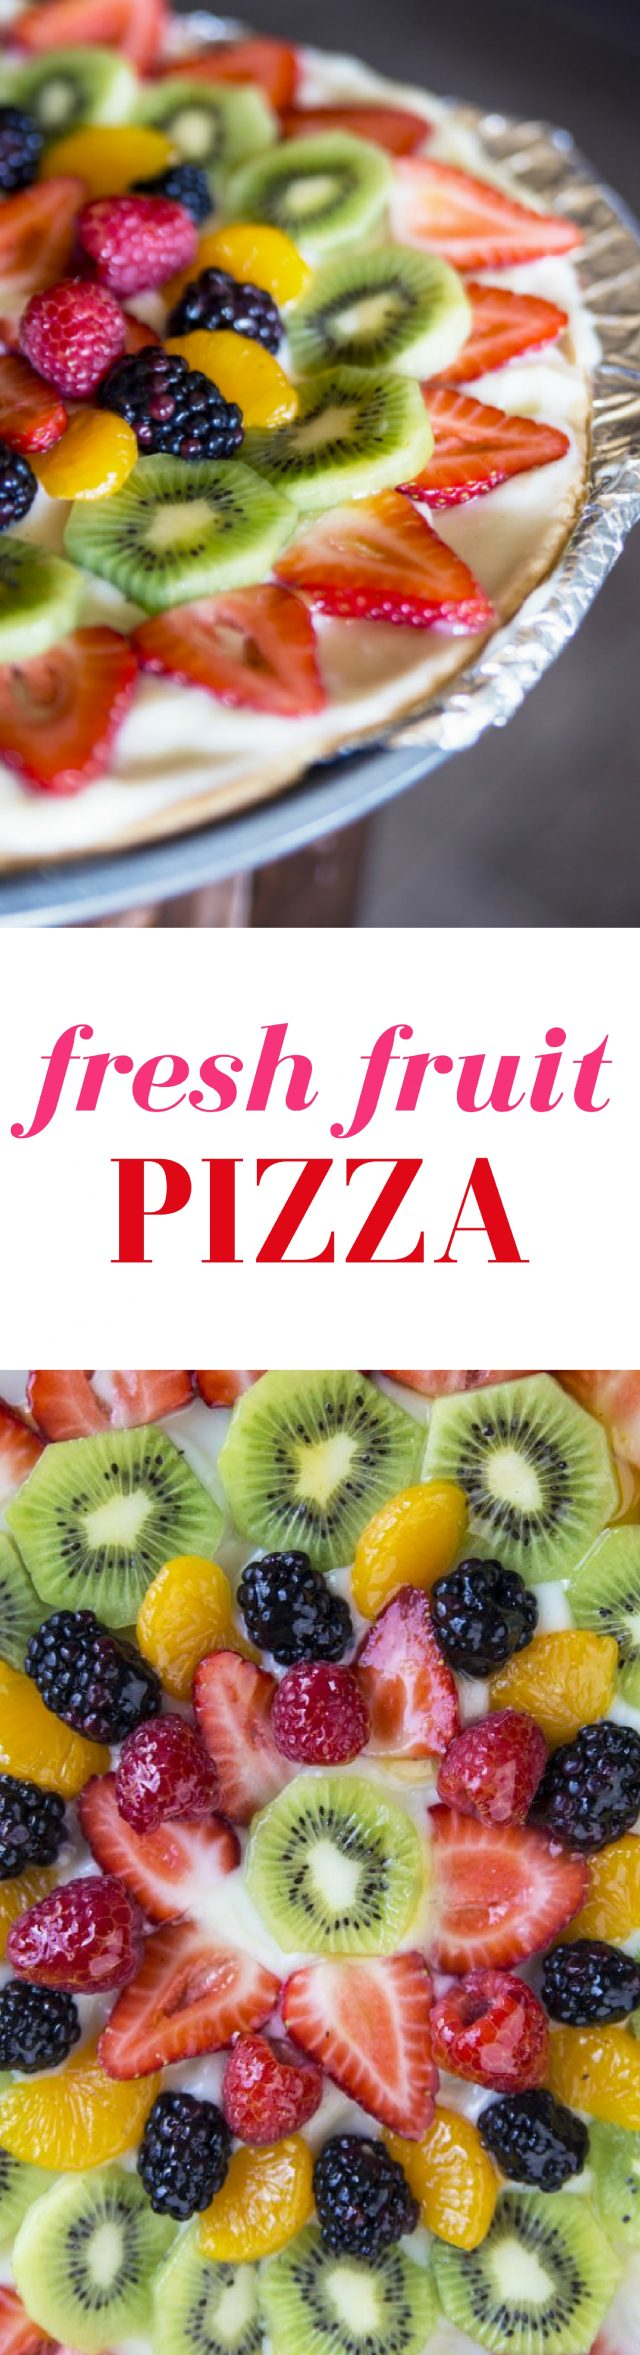 Fresh Fruit Pizza Dessert Recipe The perfect summer treat, friends. Fresh fruit with a sugar cookie crust....it's to die for.